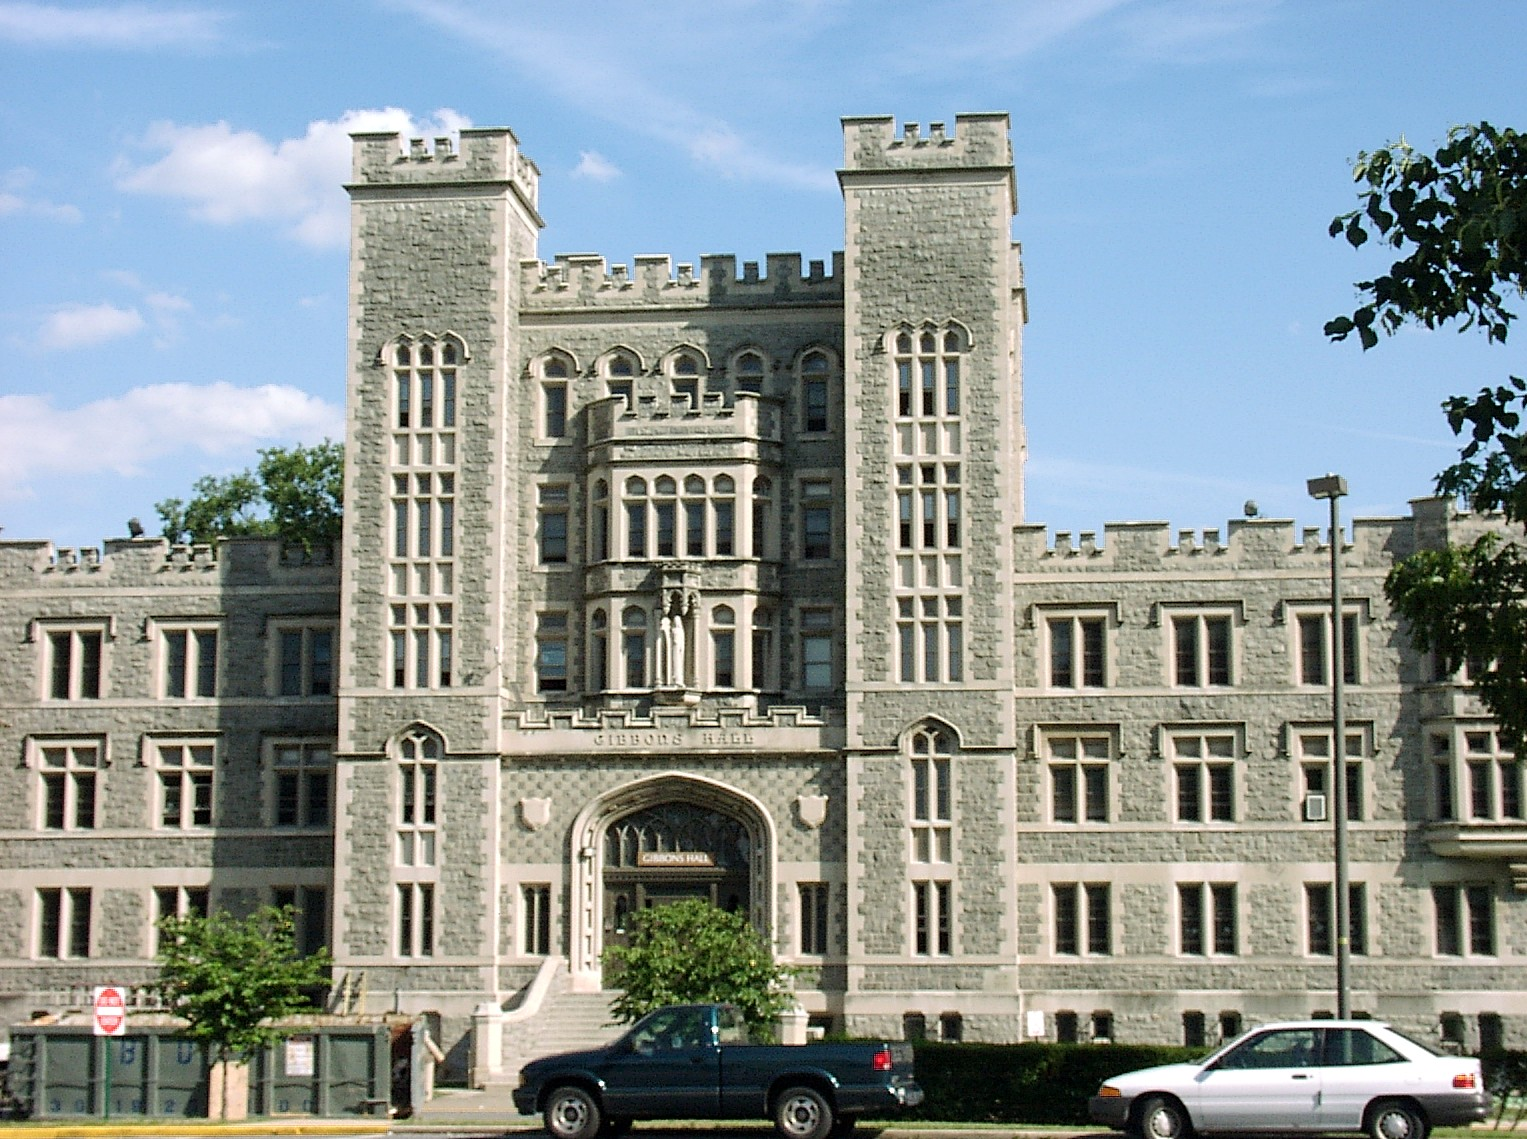 Gibbons Hall